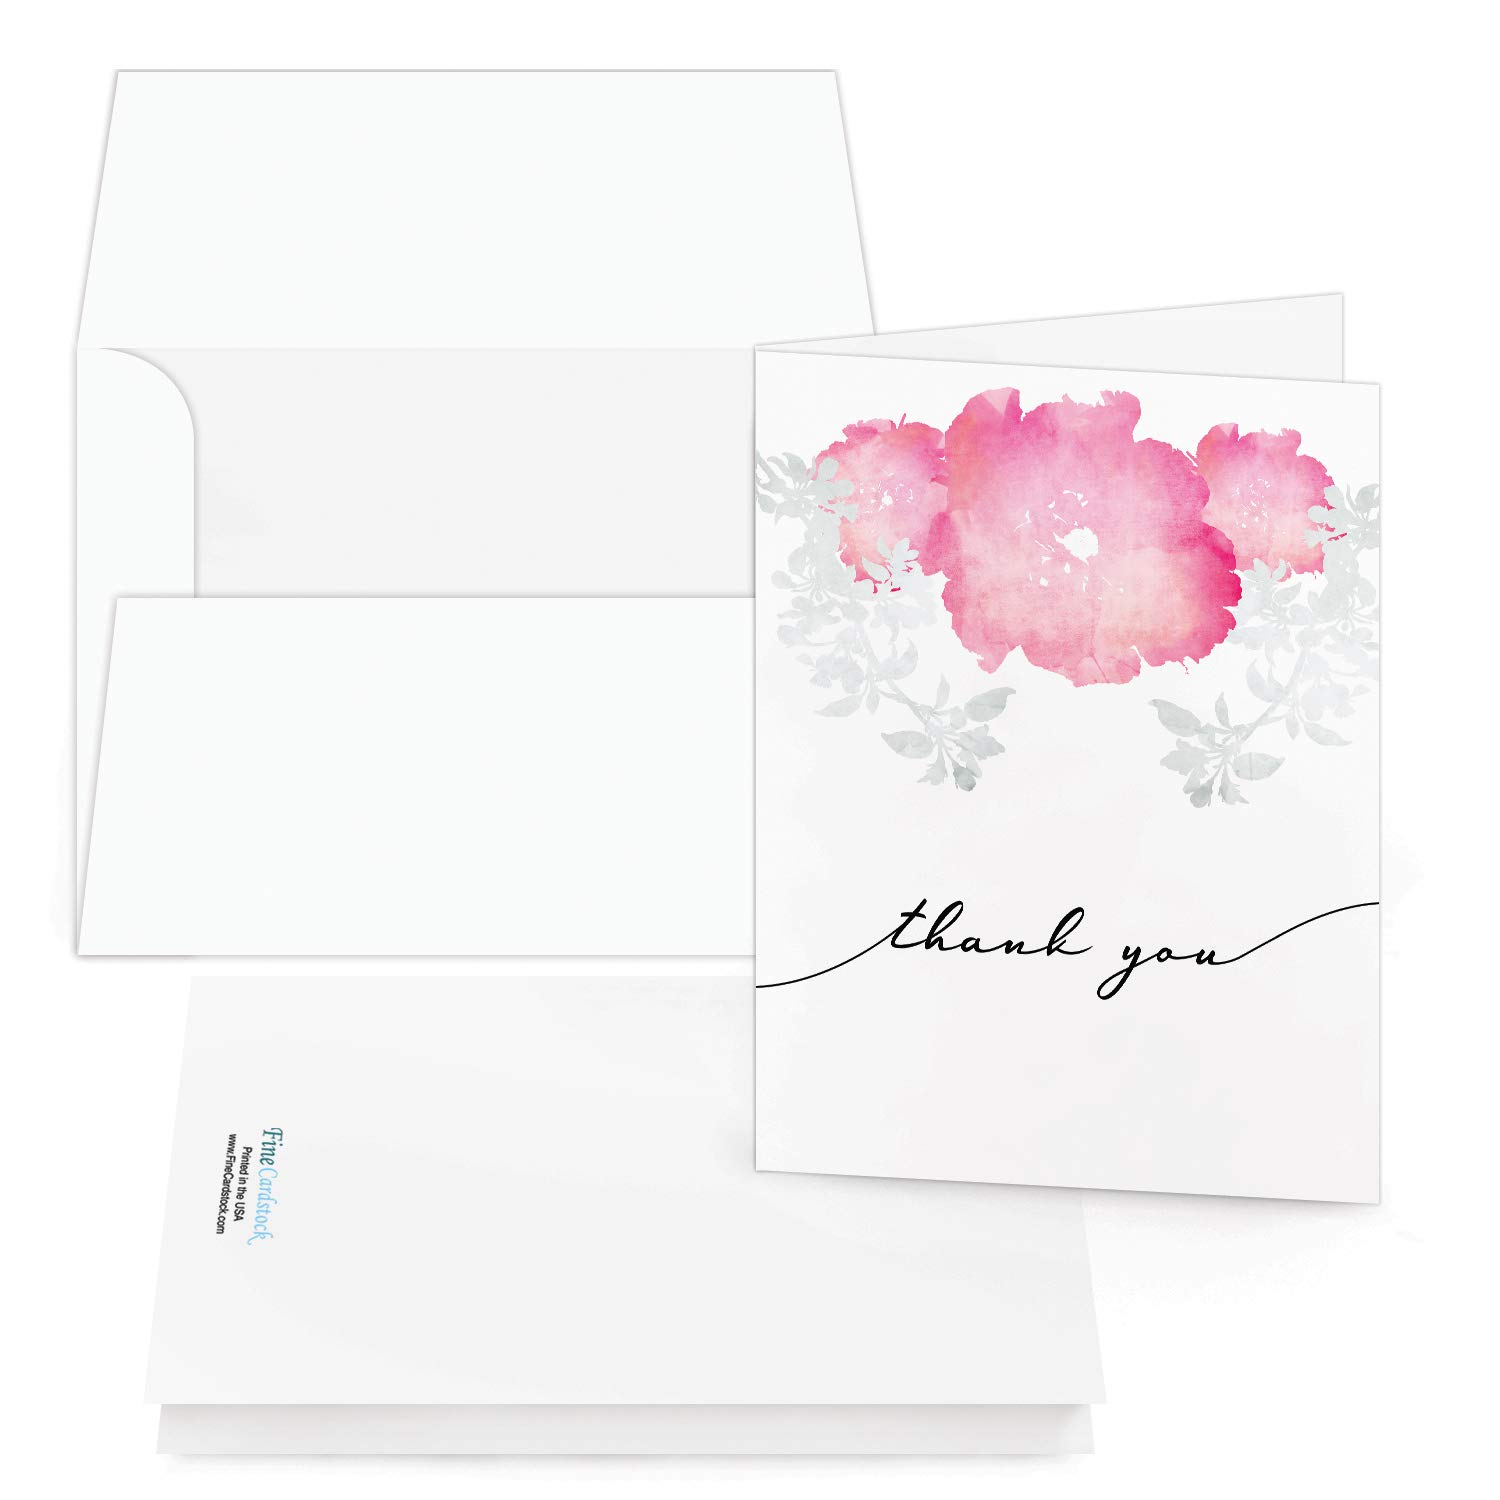 Thank You Cards - Bulk Set Of 25 Thank You Folding Greetings and 25 Envelopes - Beautiful Leaf Art Perfect For All Occasions Including Weddings, Bridal Showers And Baby Showers (Landscape, Pink Art)